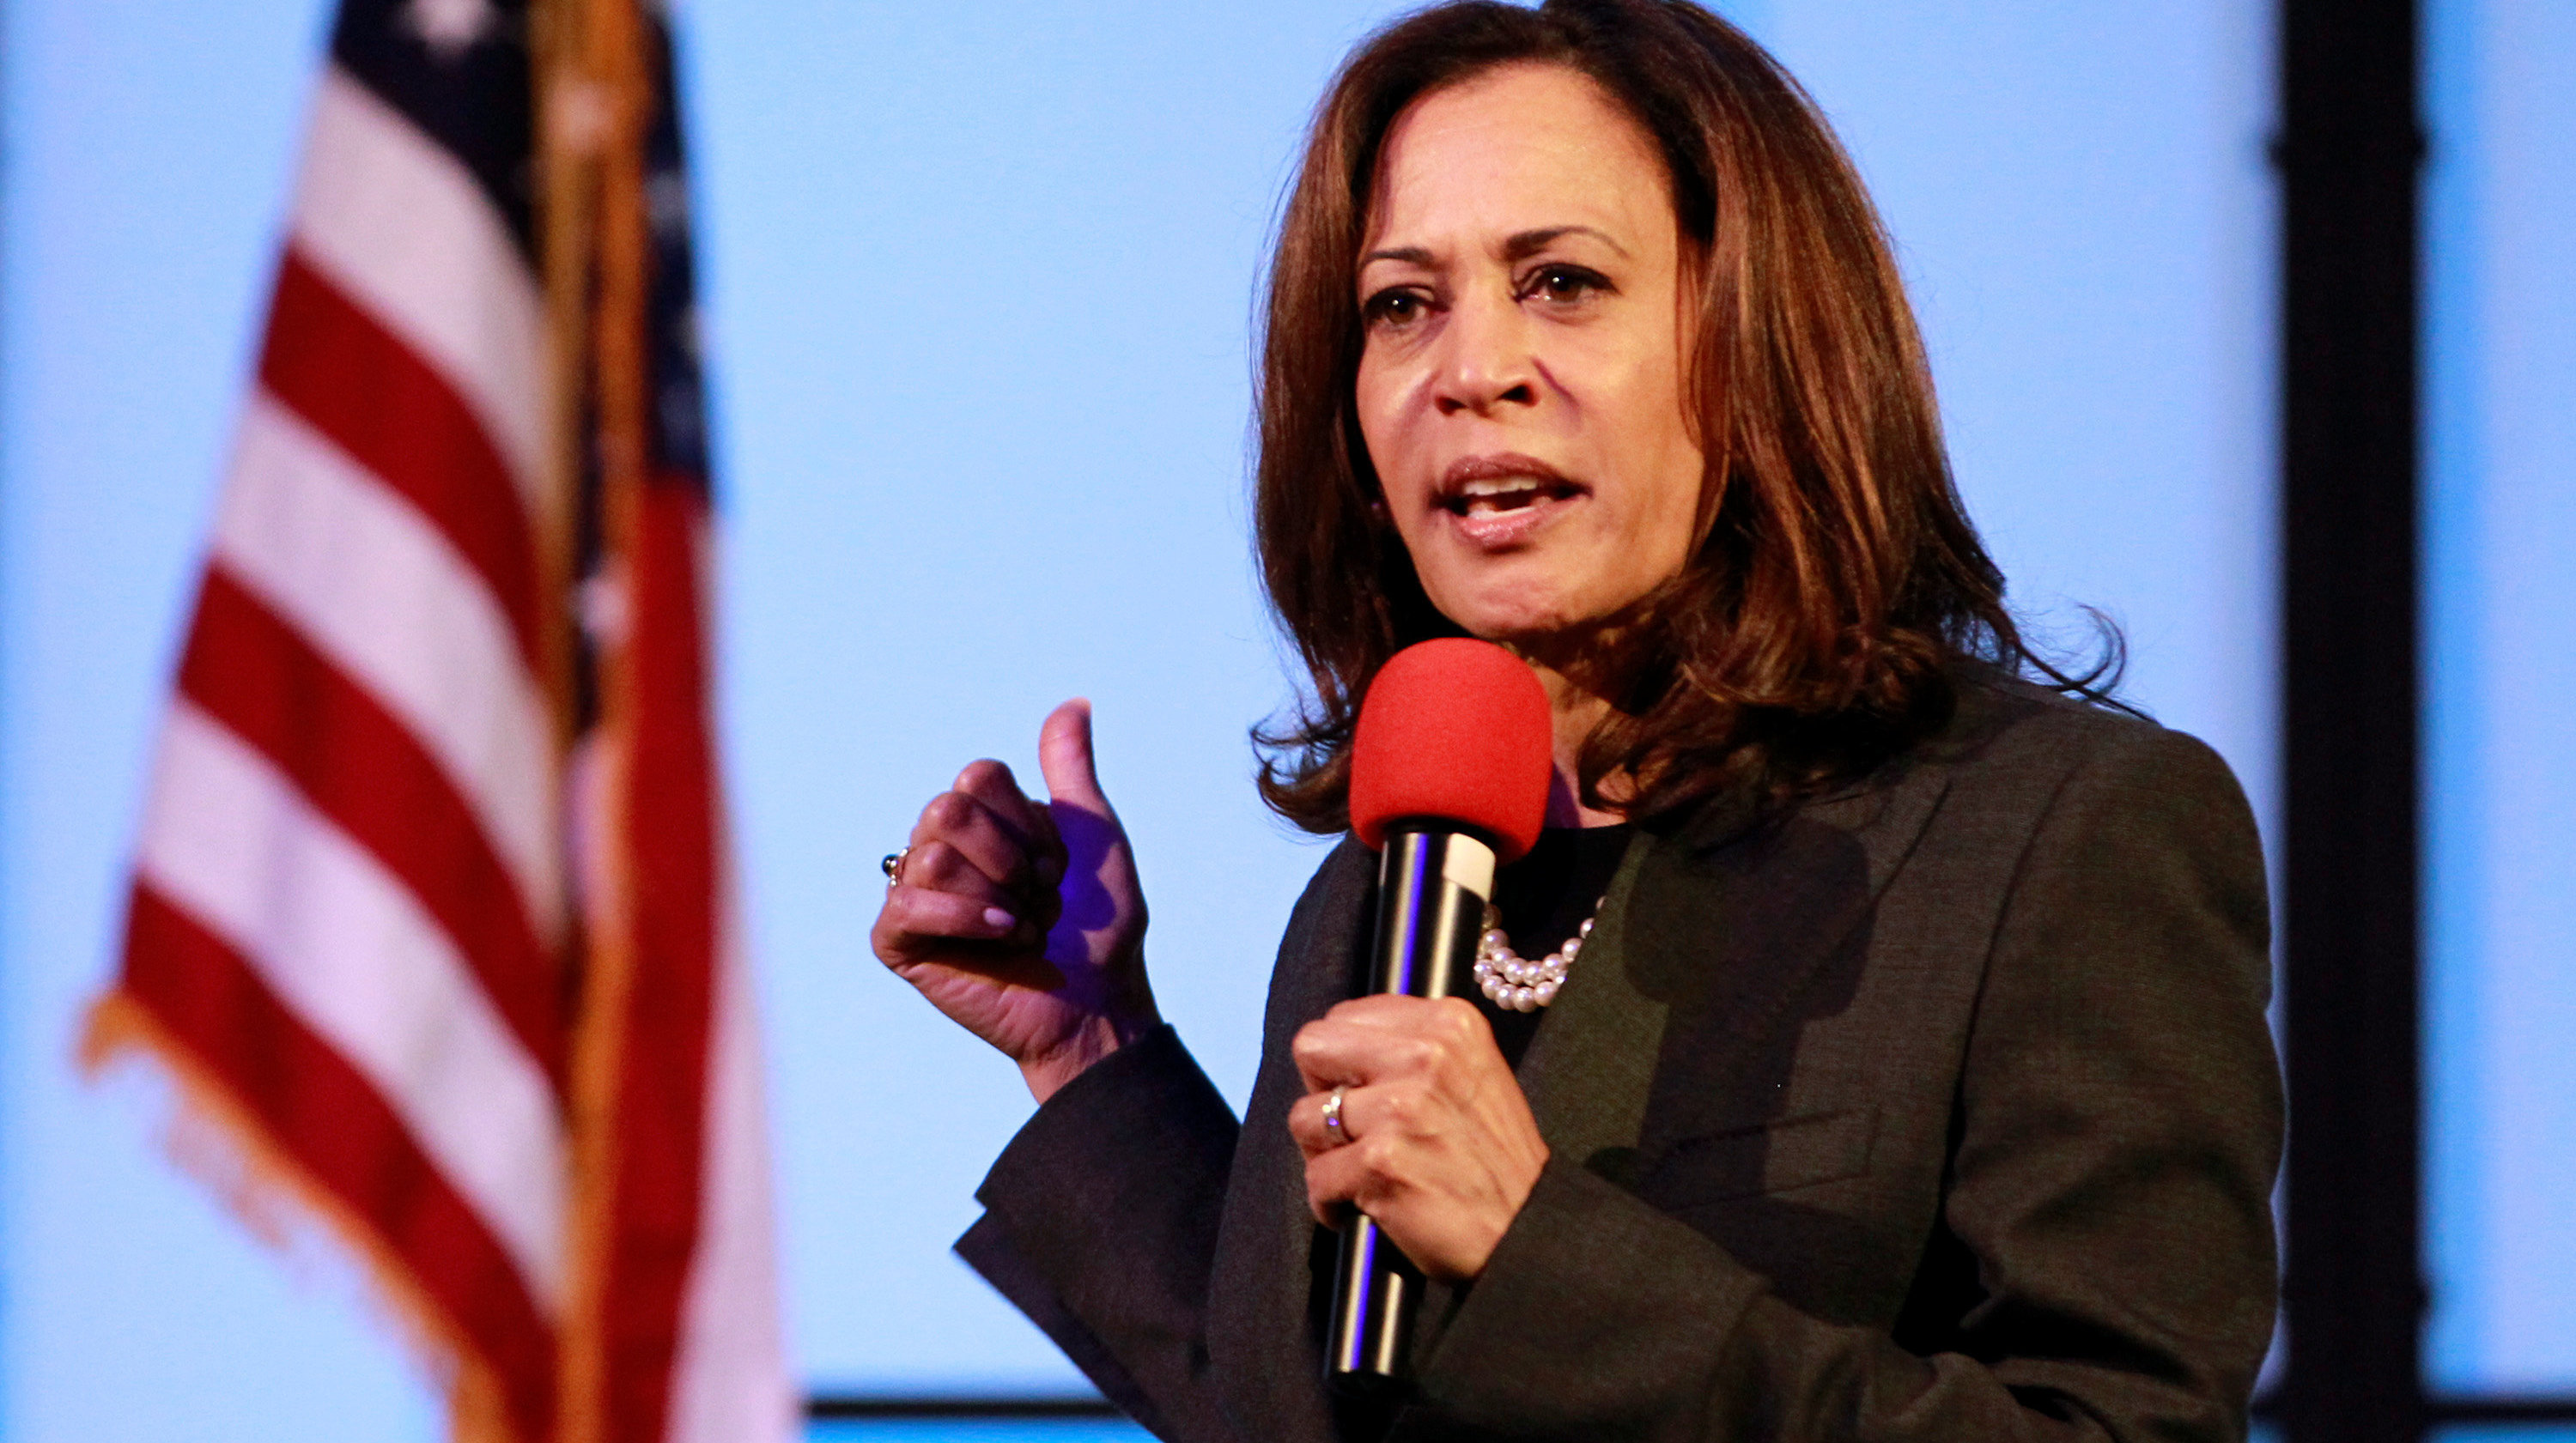 Kamala Harris Says Congress Needs To Change ICE, Perhaps 'Start From Scratch'